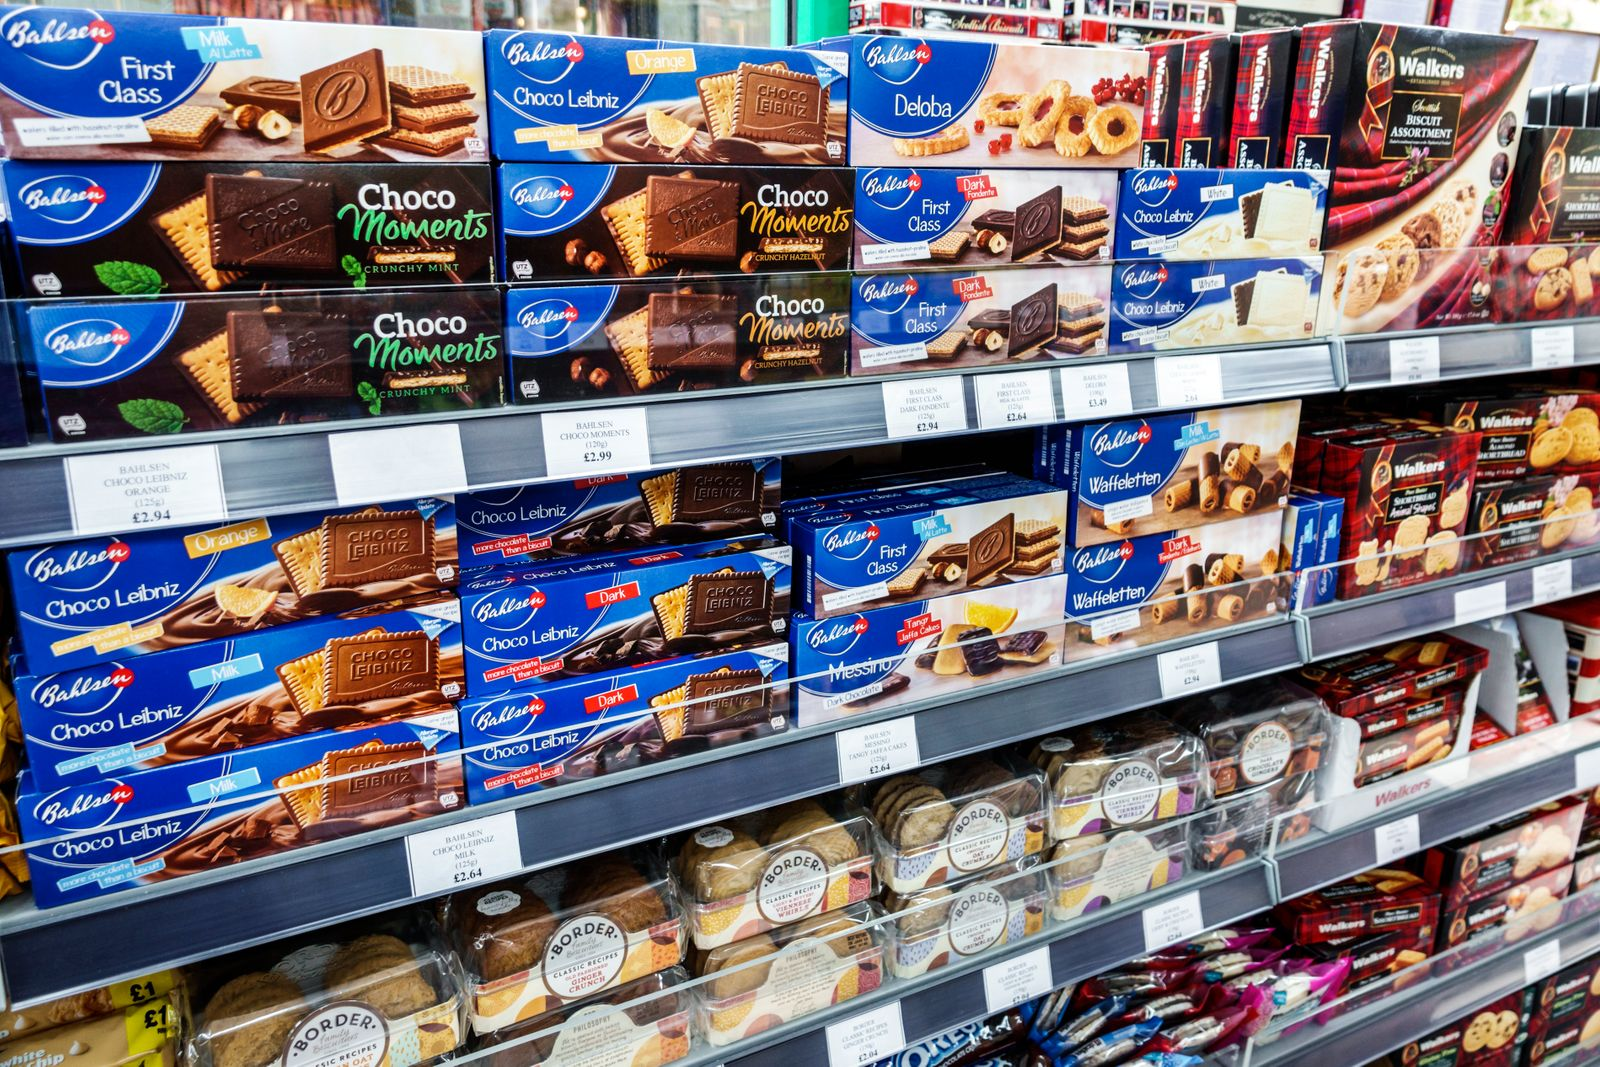 London, European biscuits, chocolate covered, Bahlsen brand